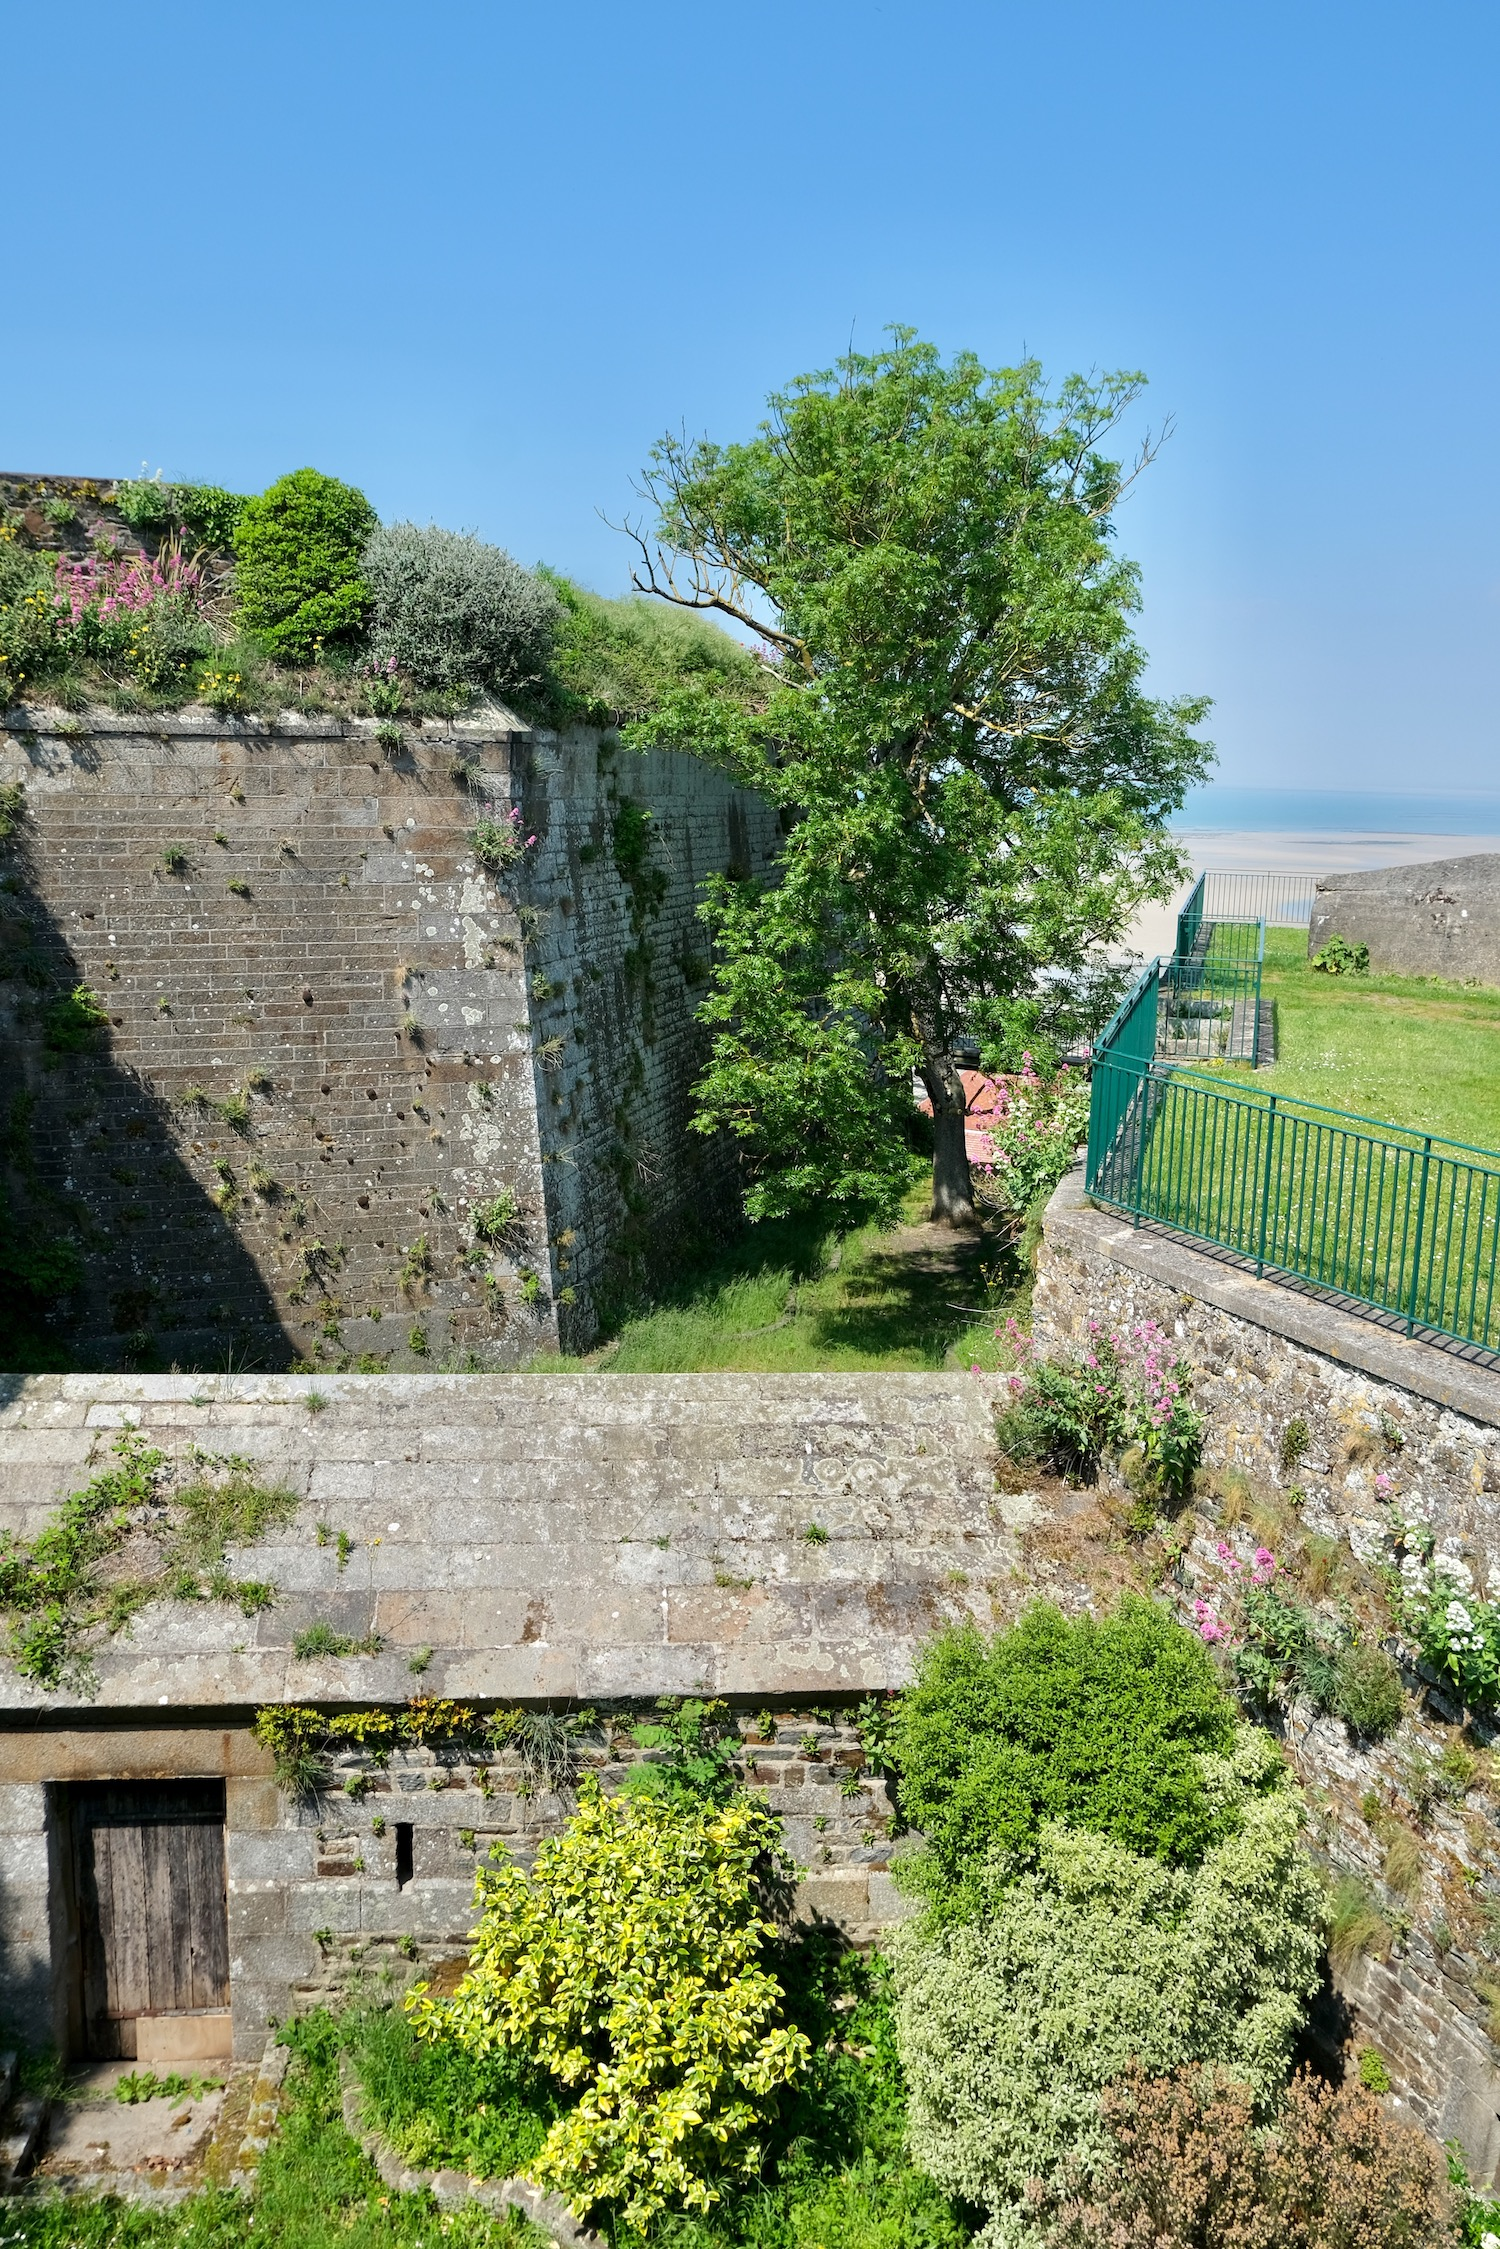 15th and 18th century fortifications